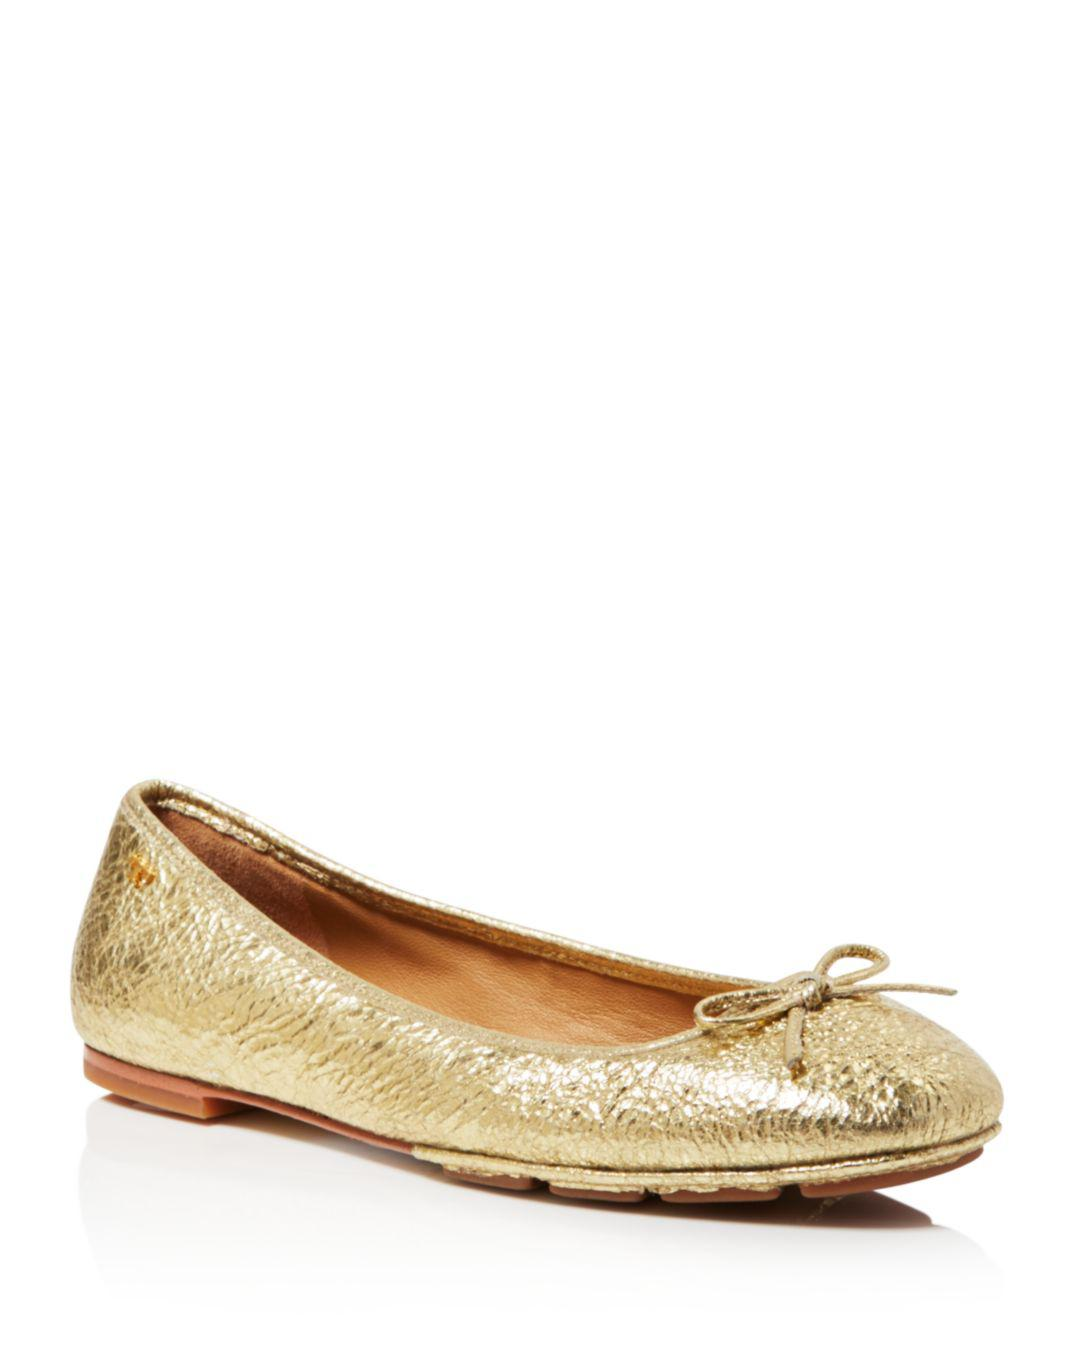 d20b204df Tory Burch Women s Laila Leather Driver Ballet Flats - Save ...